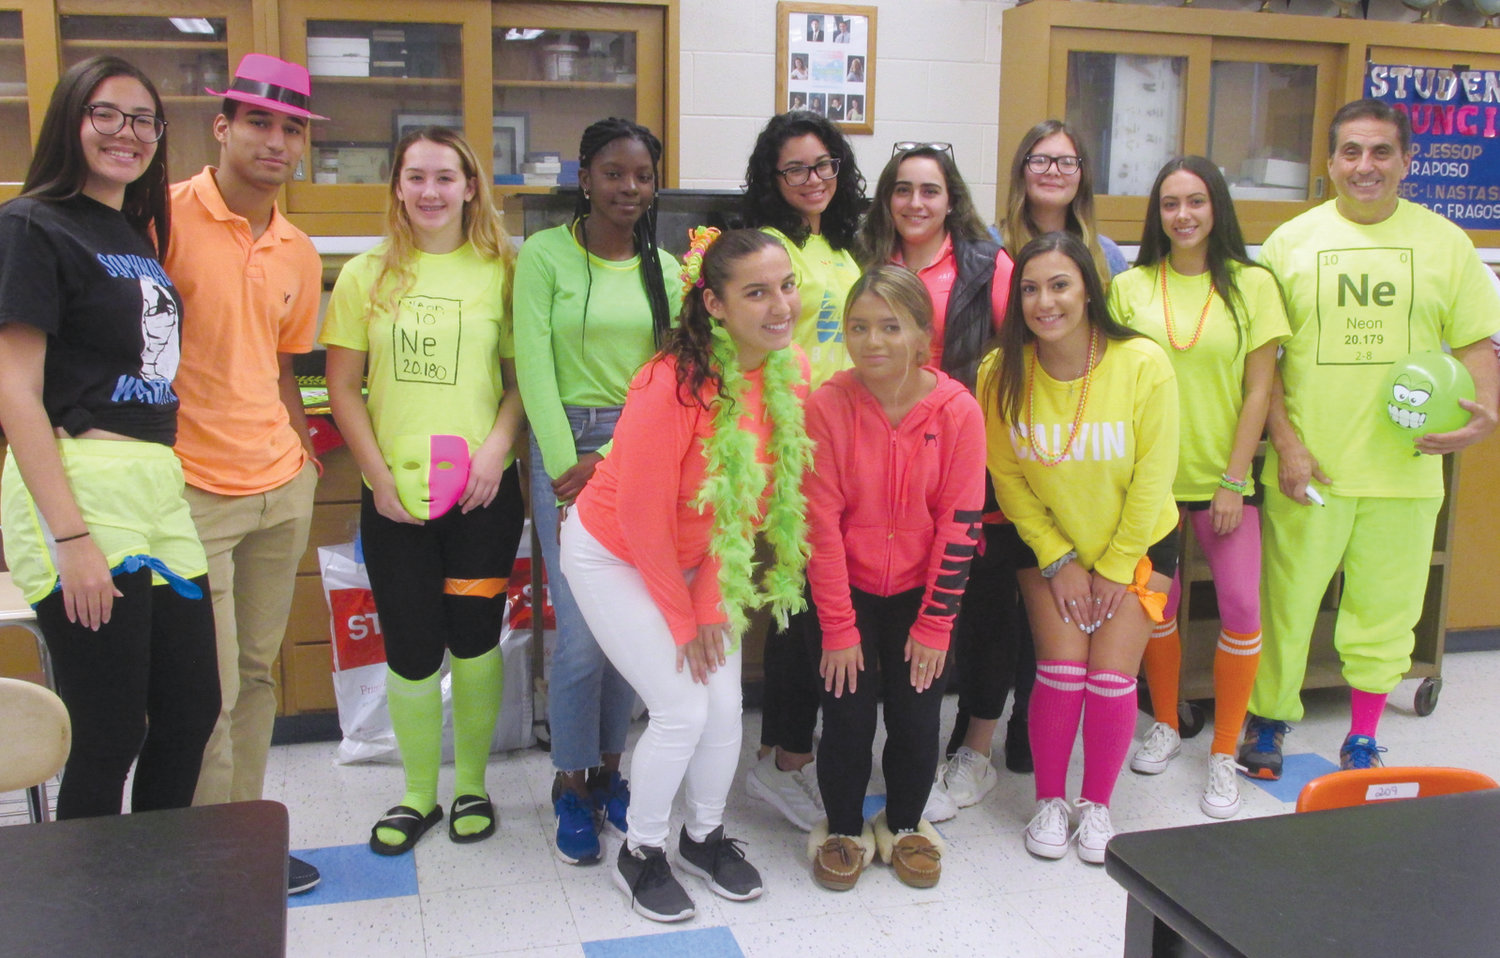 SUPER SPIRIT: Greg Russo and Johnston High School students will be among those decked out in a variety of garb during Spirit Week on Cherry Hill.